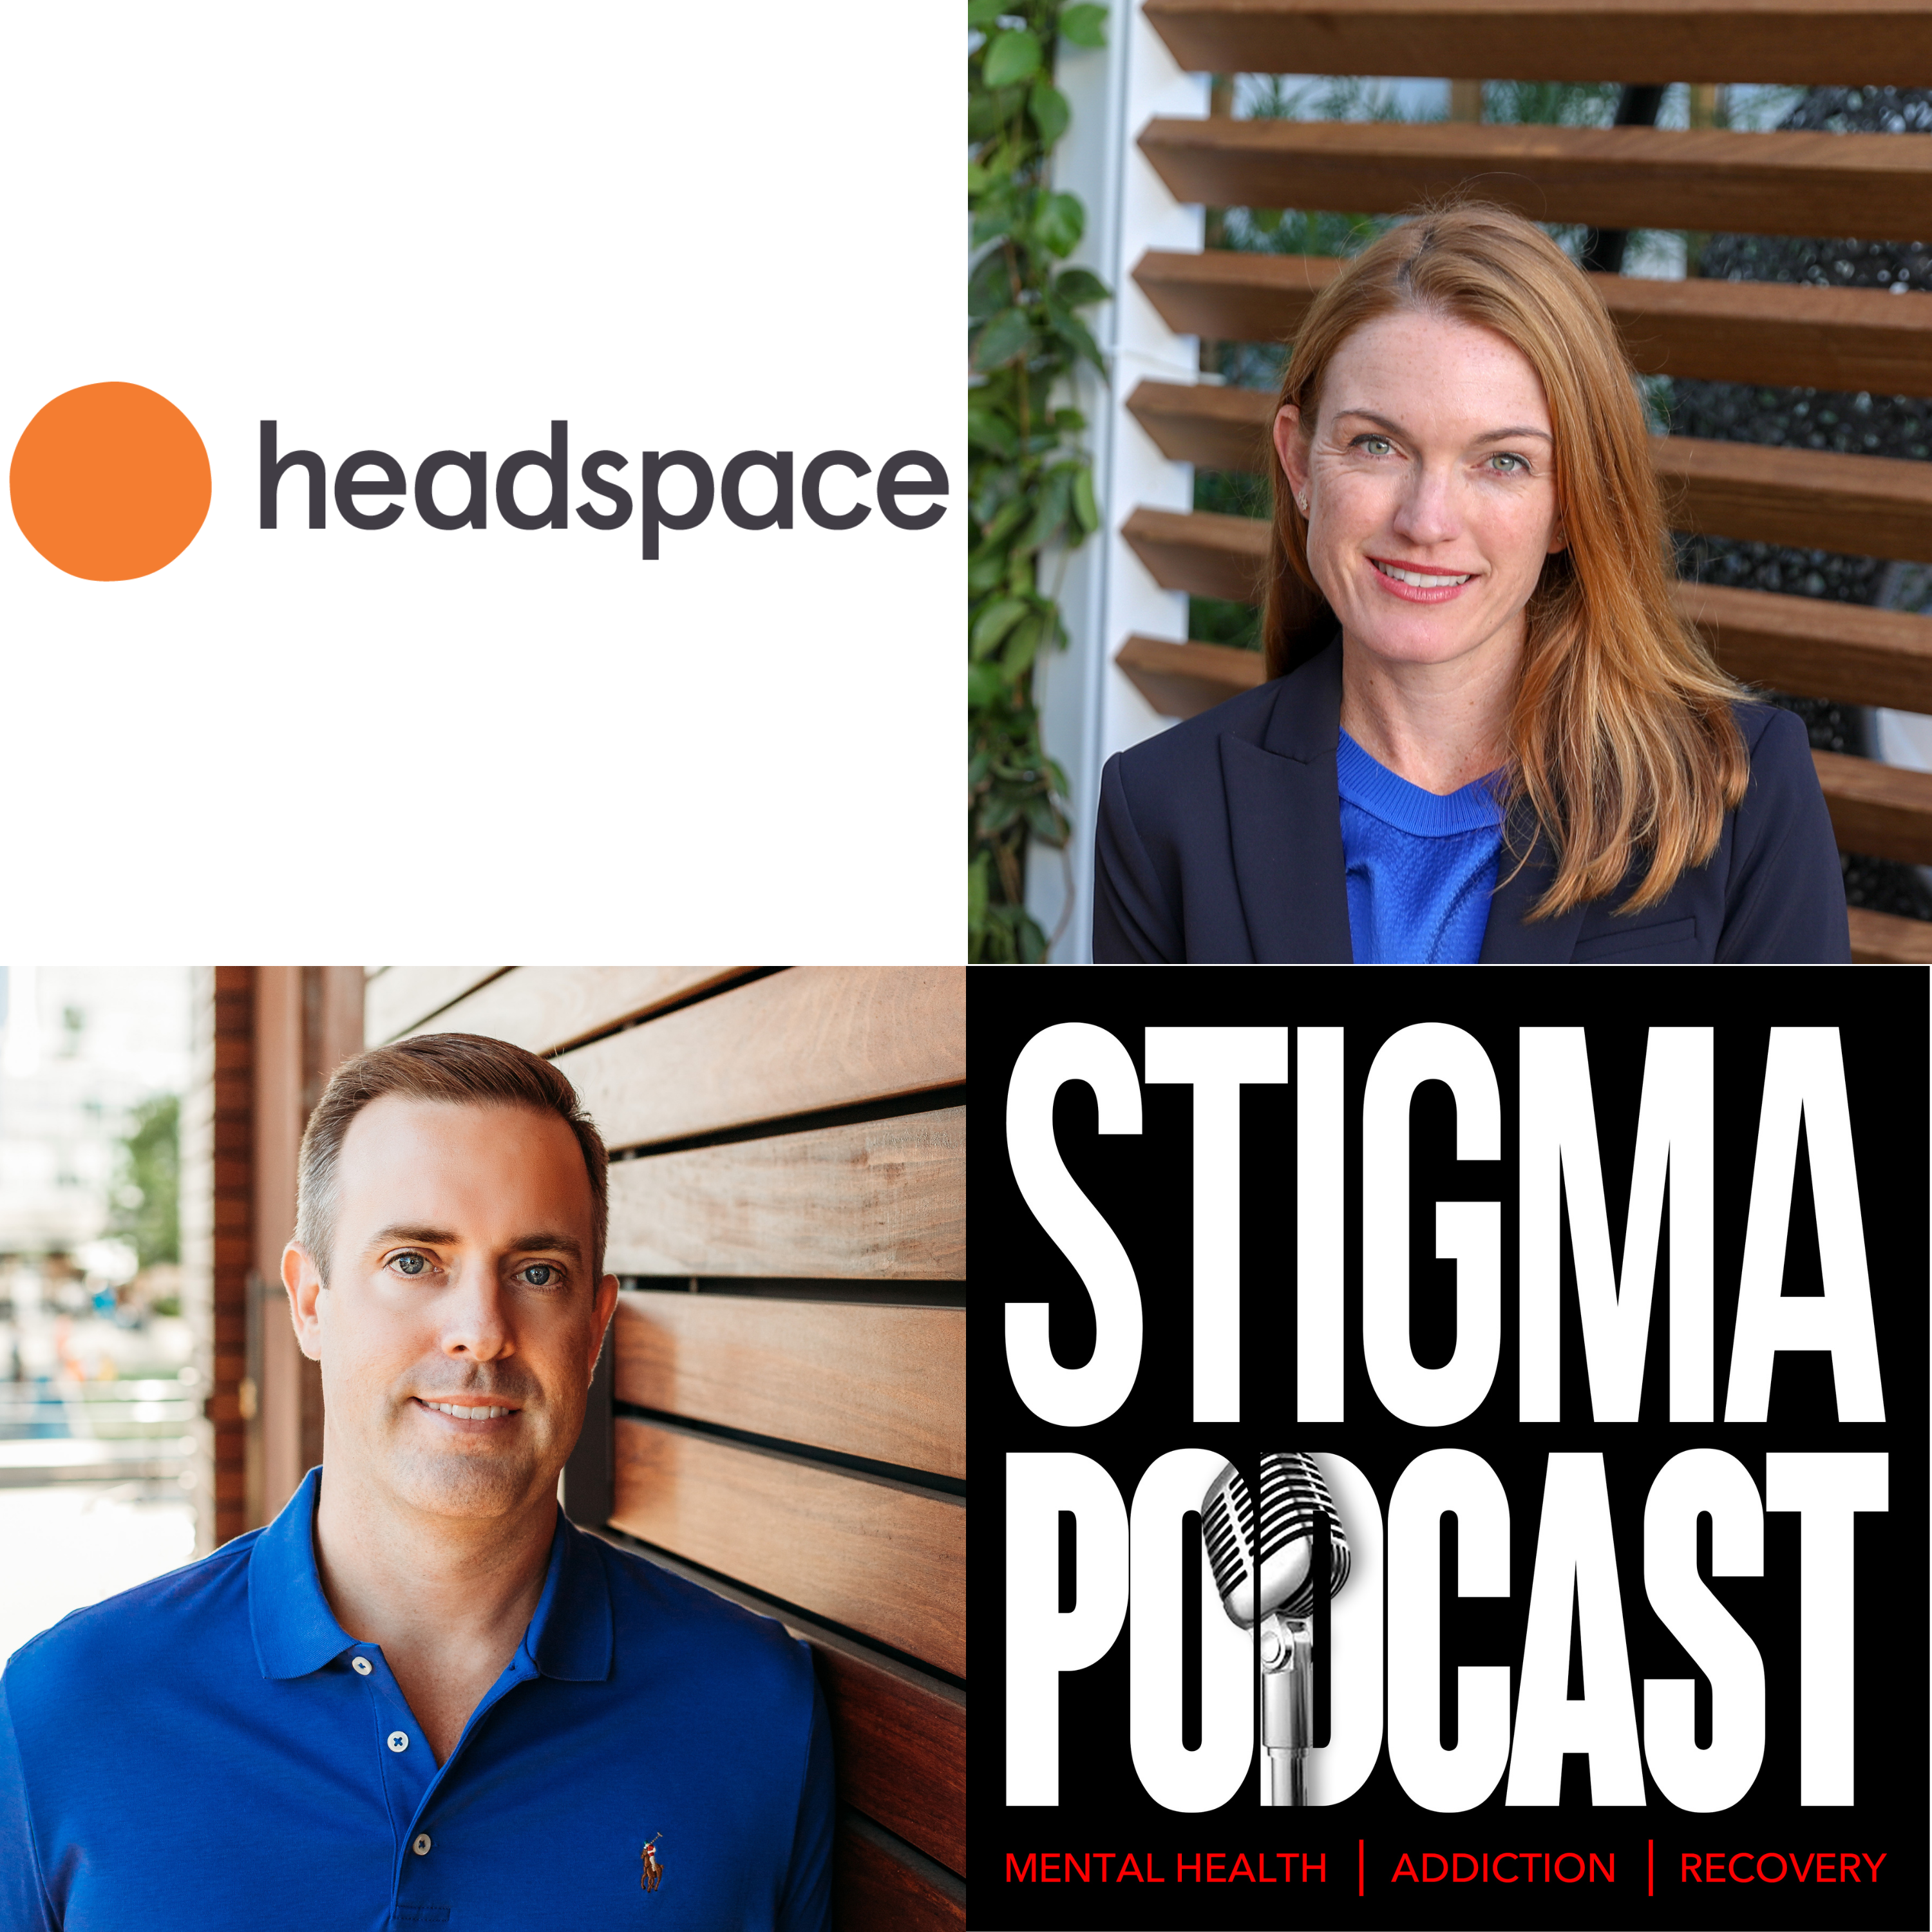 Stigma Podcast - Mental Health - #72 - Headspace's Chief Strategy and Science Officer - Megan Jones Bell